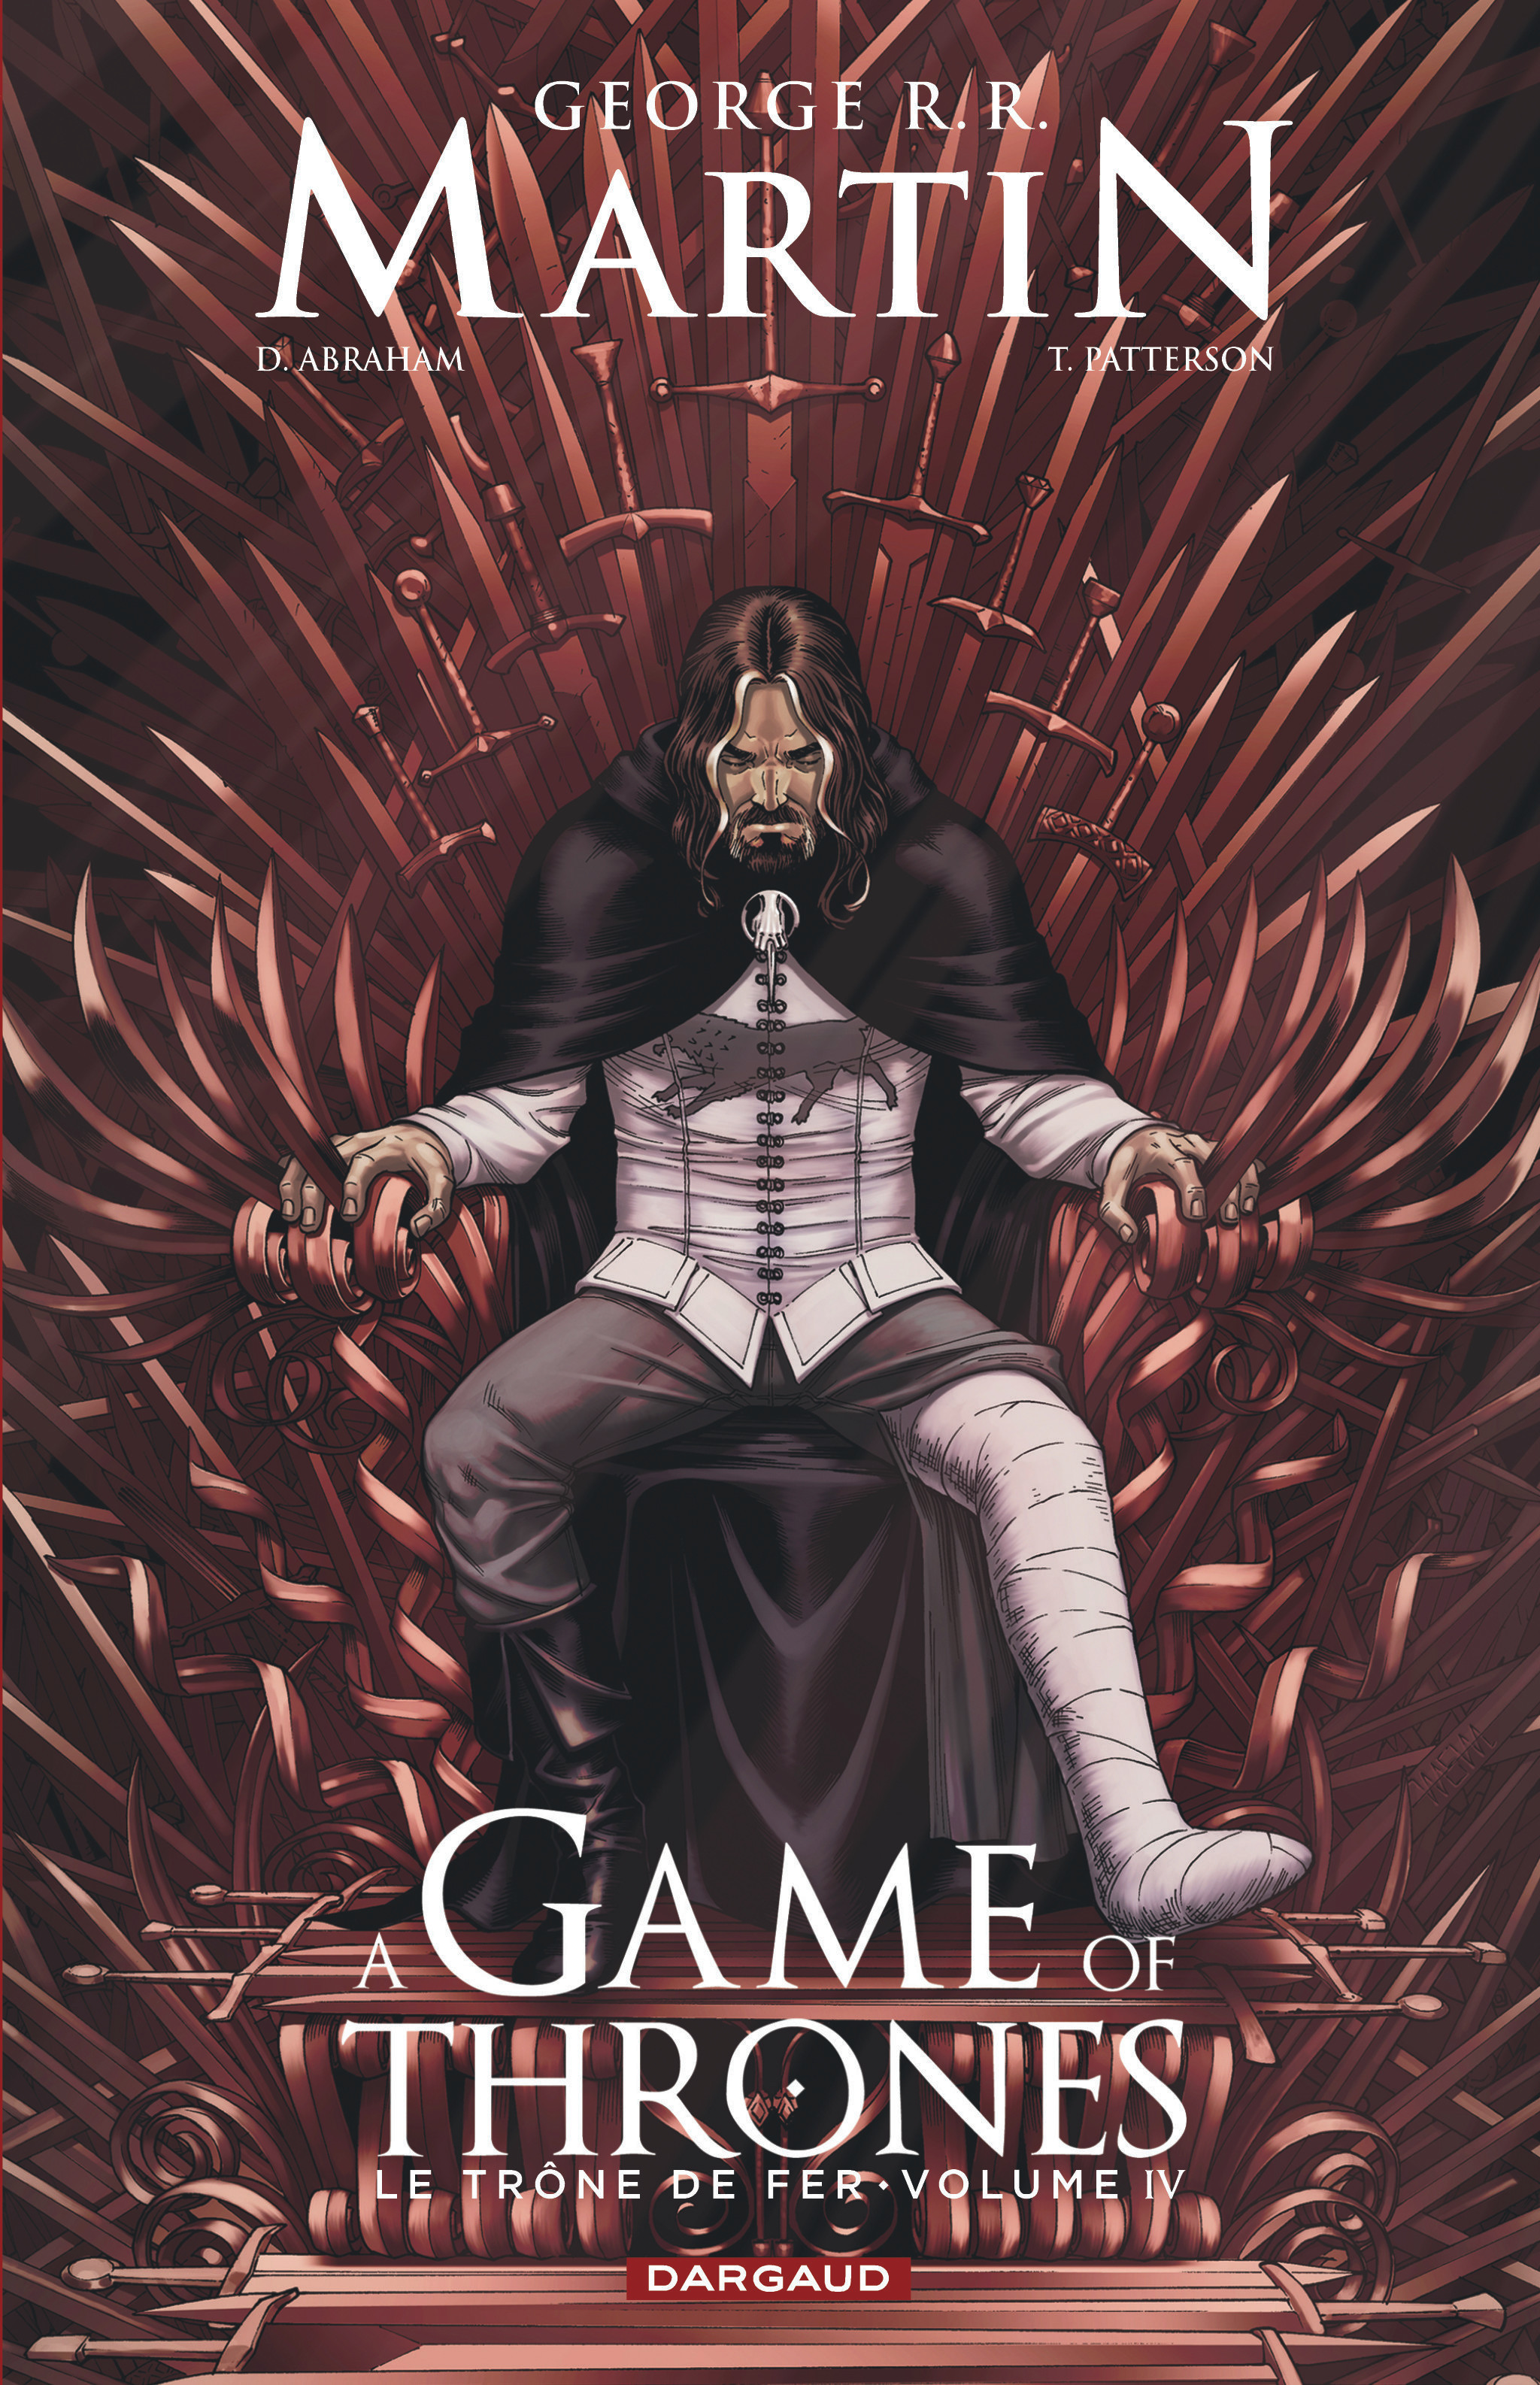 A GAME OF THRONES-LE TRONE FER - GAME OF THRONES (A) - LE TRONE DE FER - TOME 4 - A GAME OF THRO